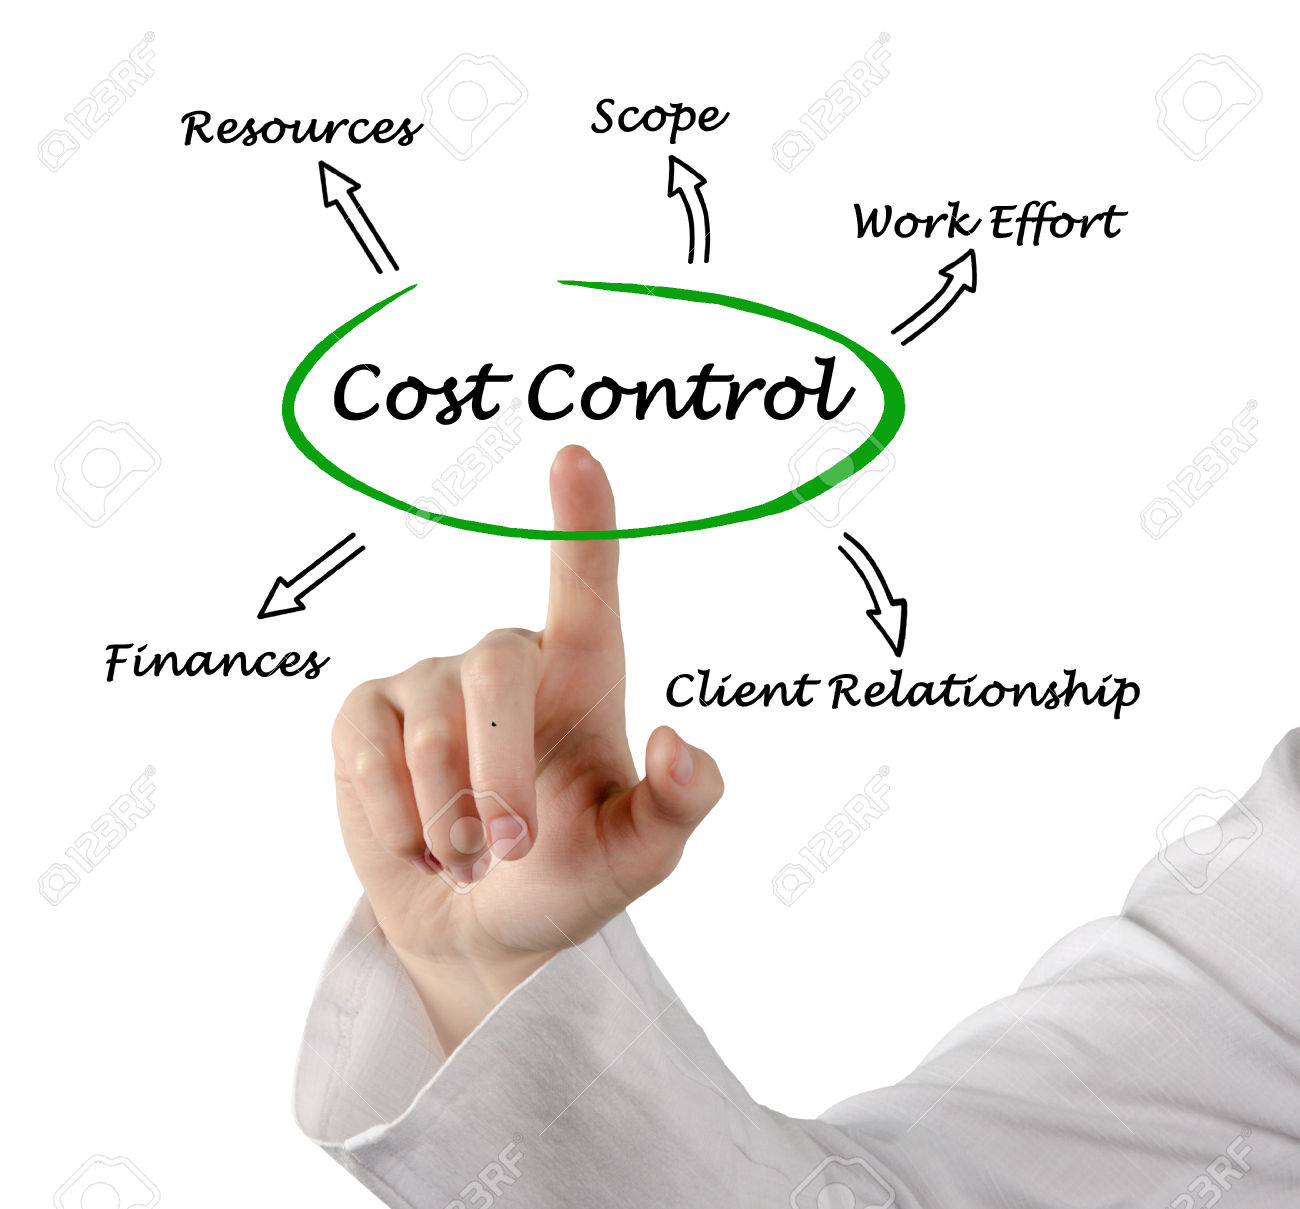 cost control and cost reduction essay Cost control cost control is simply the prevention of waste within the existing environment cost control is the procedure where by actual results 1 2 3 4 5 6 7 cost reduction cost reduction is not concerned with setting targets and standards cost reduction is the final result in the cost.